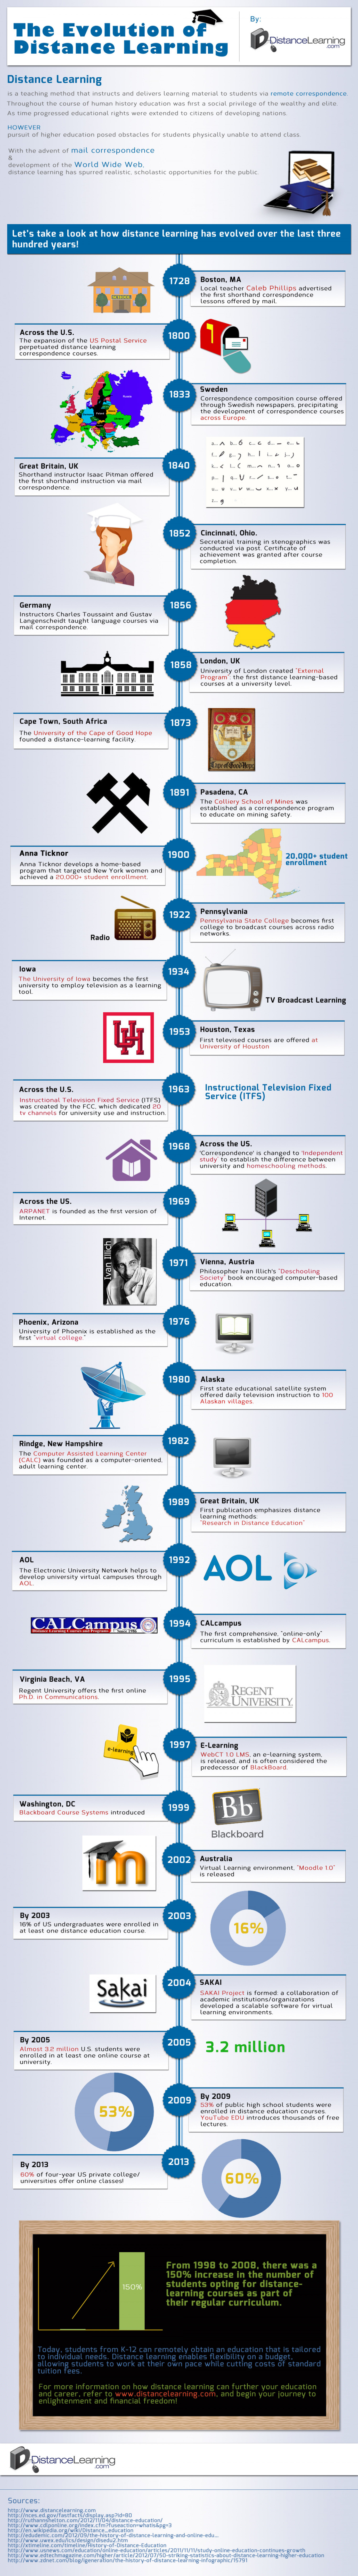 The Evolution of Distance Learning Infographic